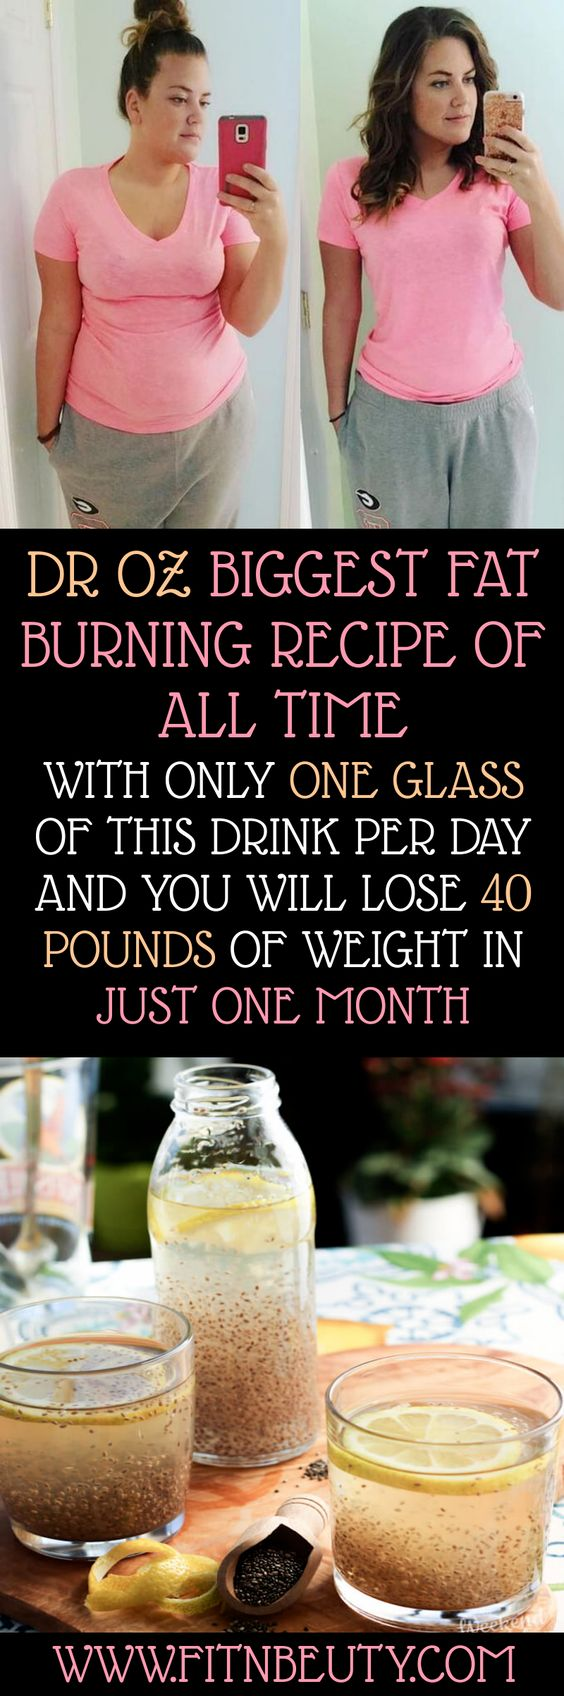 DR OZ BIGGEST FAT BURNING RECIPE OF ALL TIME WITH ONLY ONE GLASS OF THIS DRINK PER DAY AND YOU WILL LOSE 40 POUNDS OF WEIGHT IN JUST ONE MONTH!